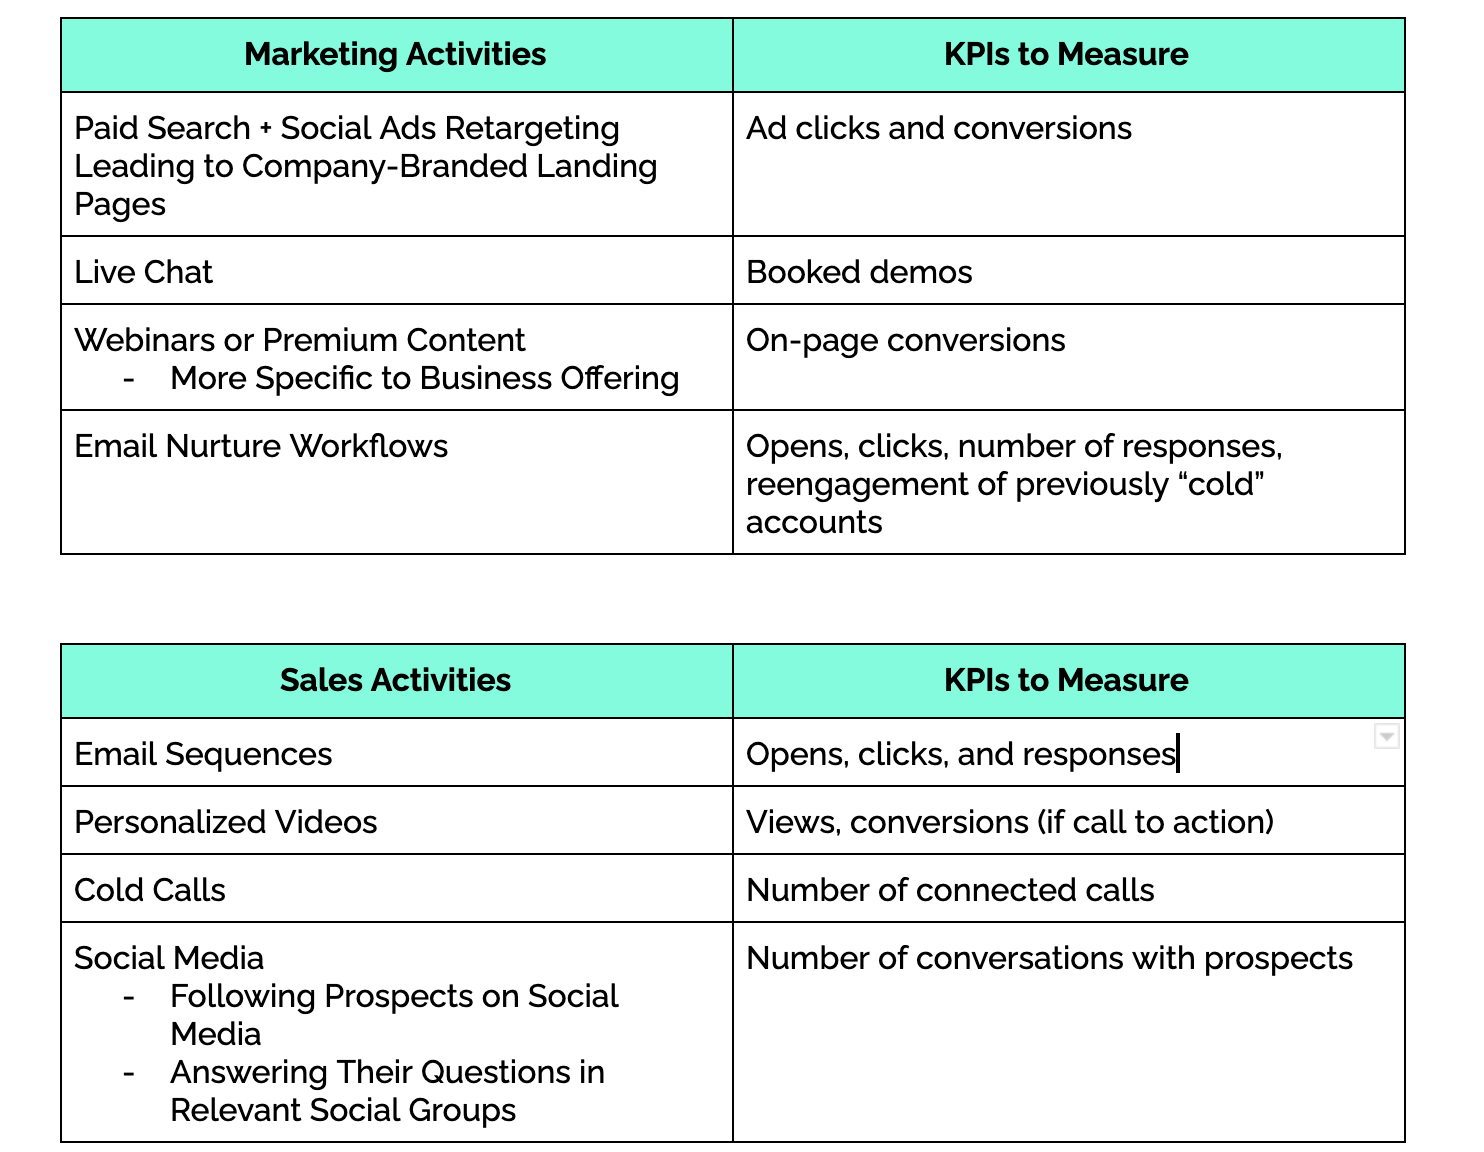 Middle-of-Funnel Tactics and Metrics